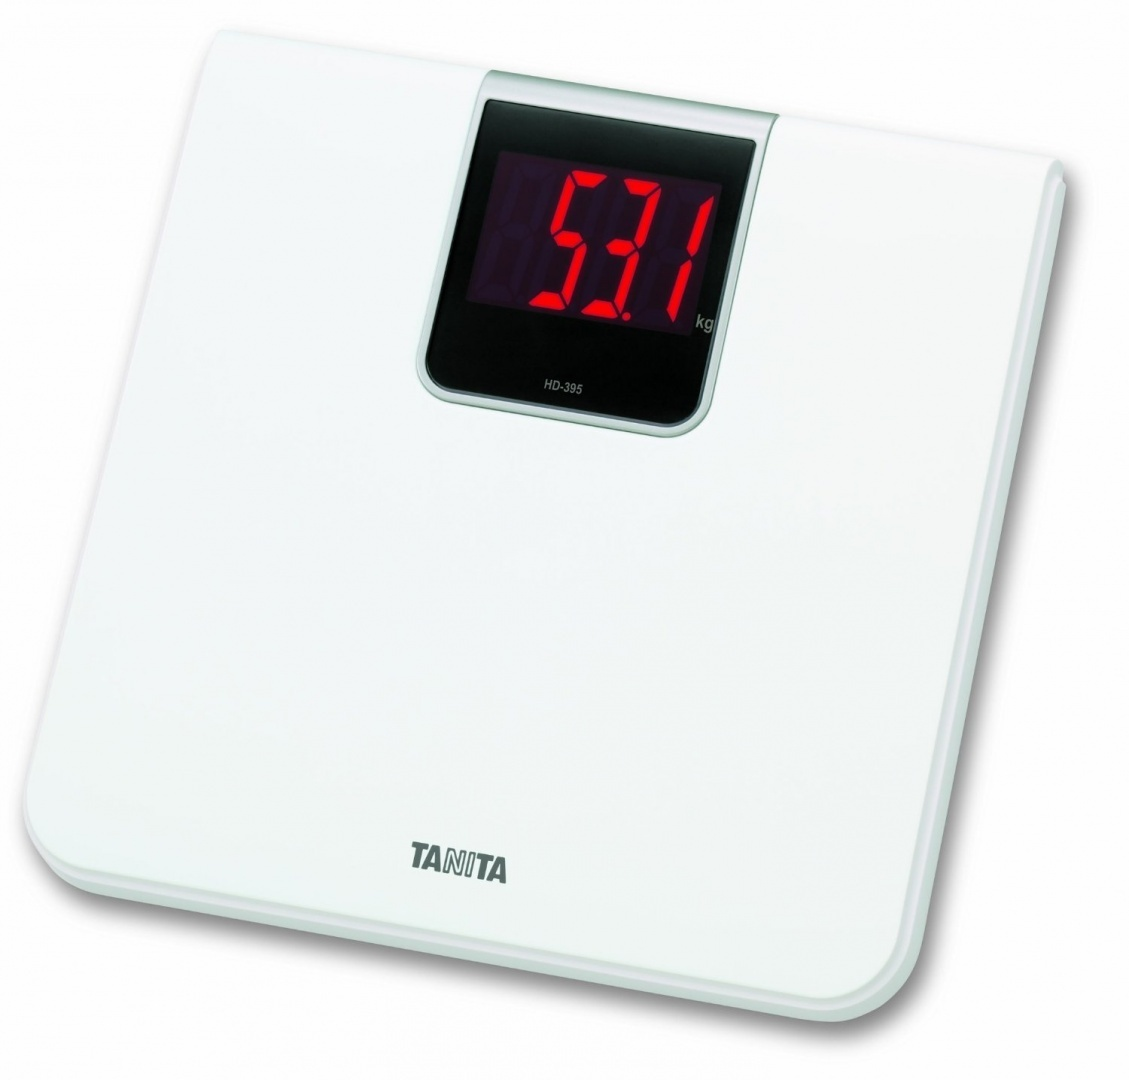 Cool Tanita Hd 395 Wh White Digital Bathroom Scale Download Free Architecture Designs Scobabritishbridgeorg